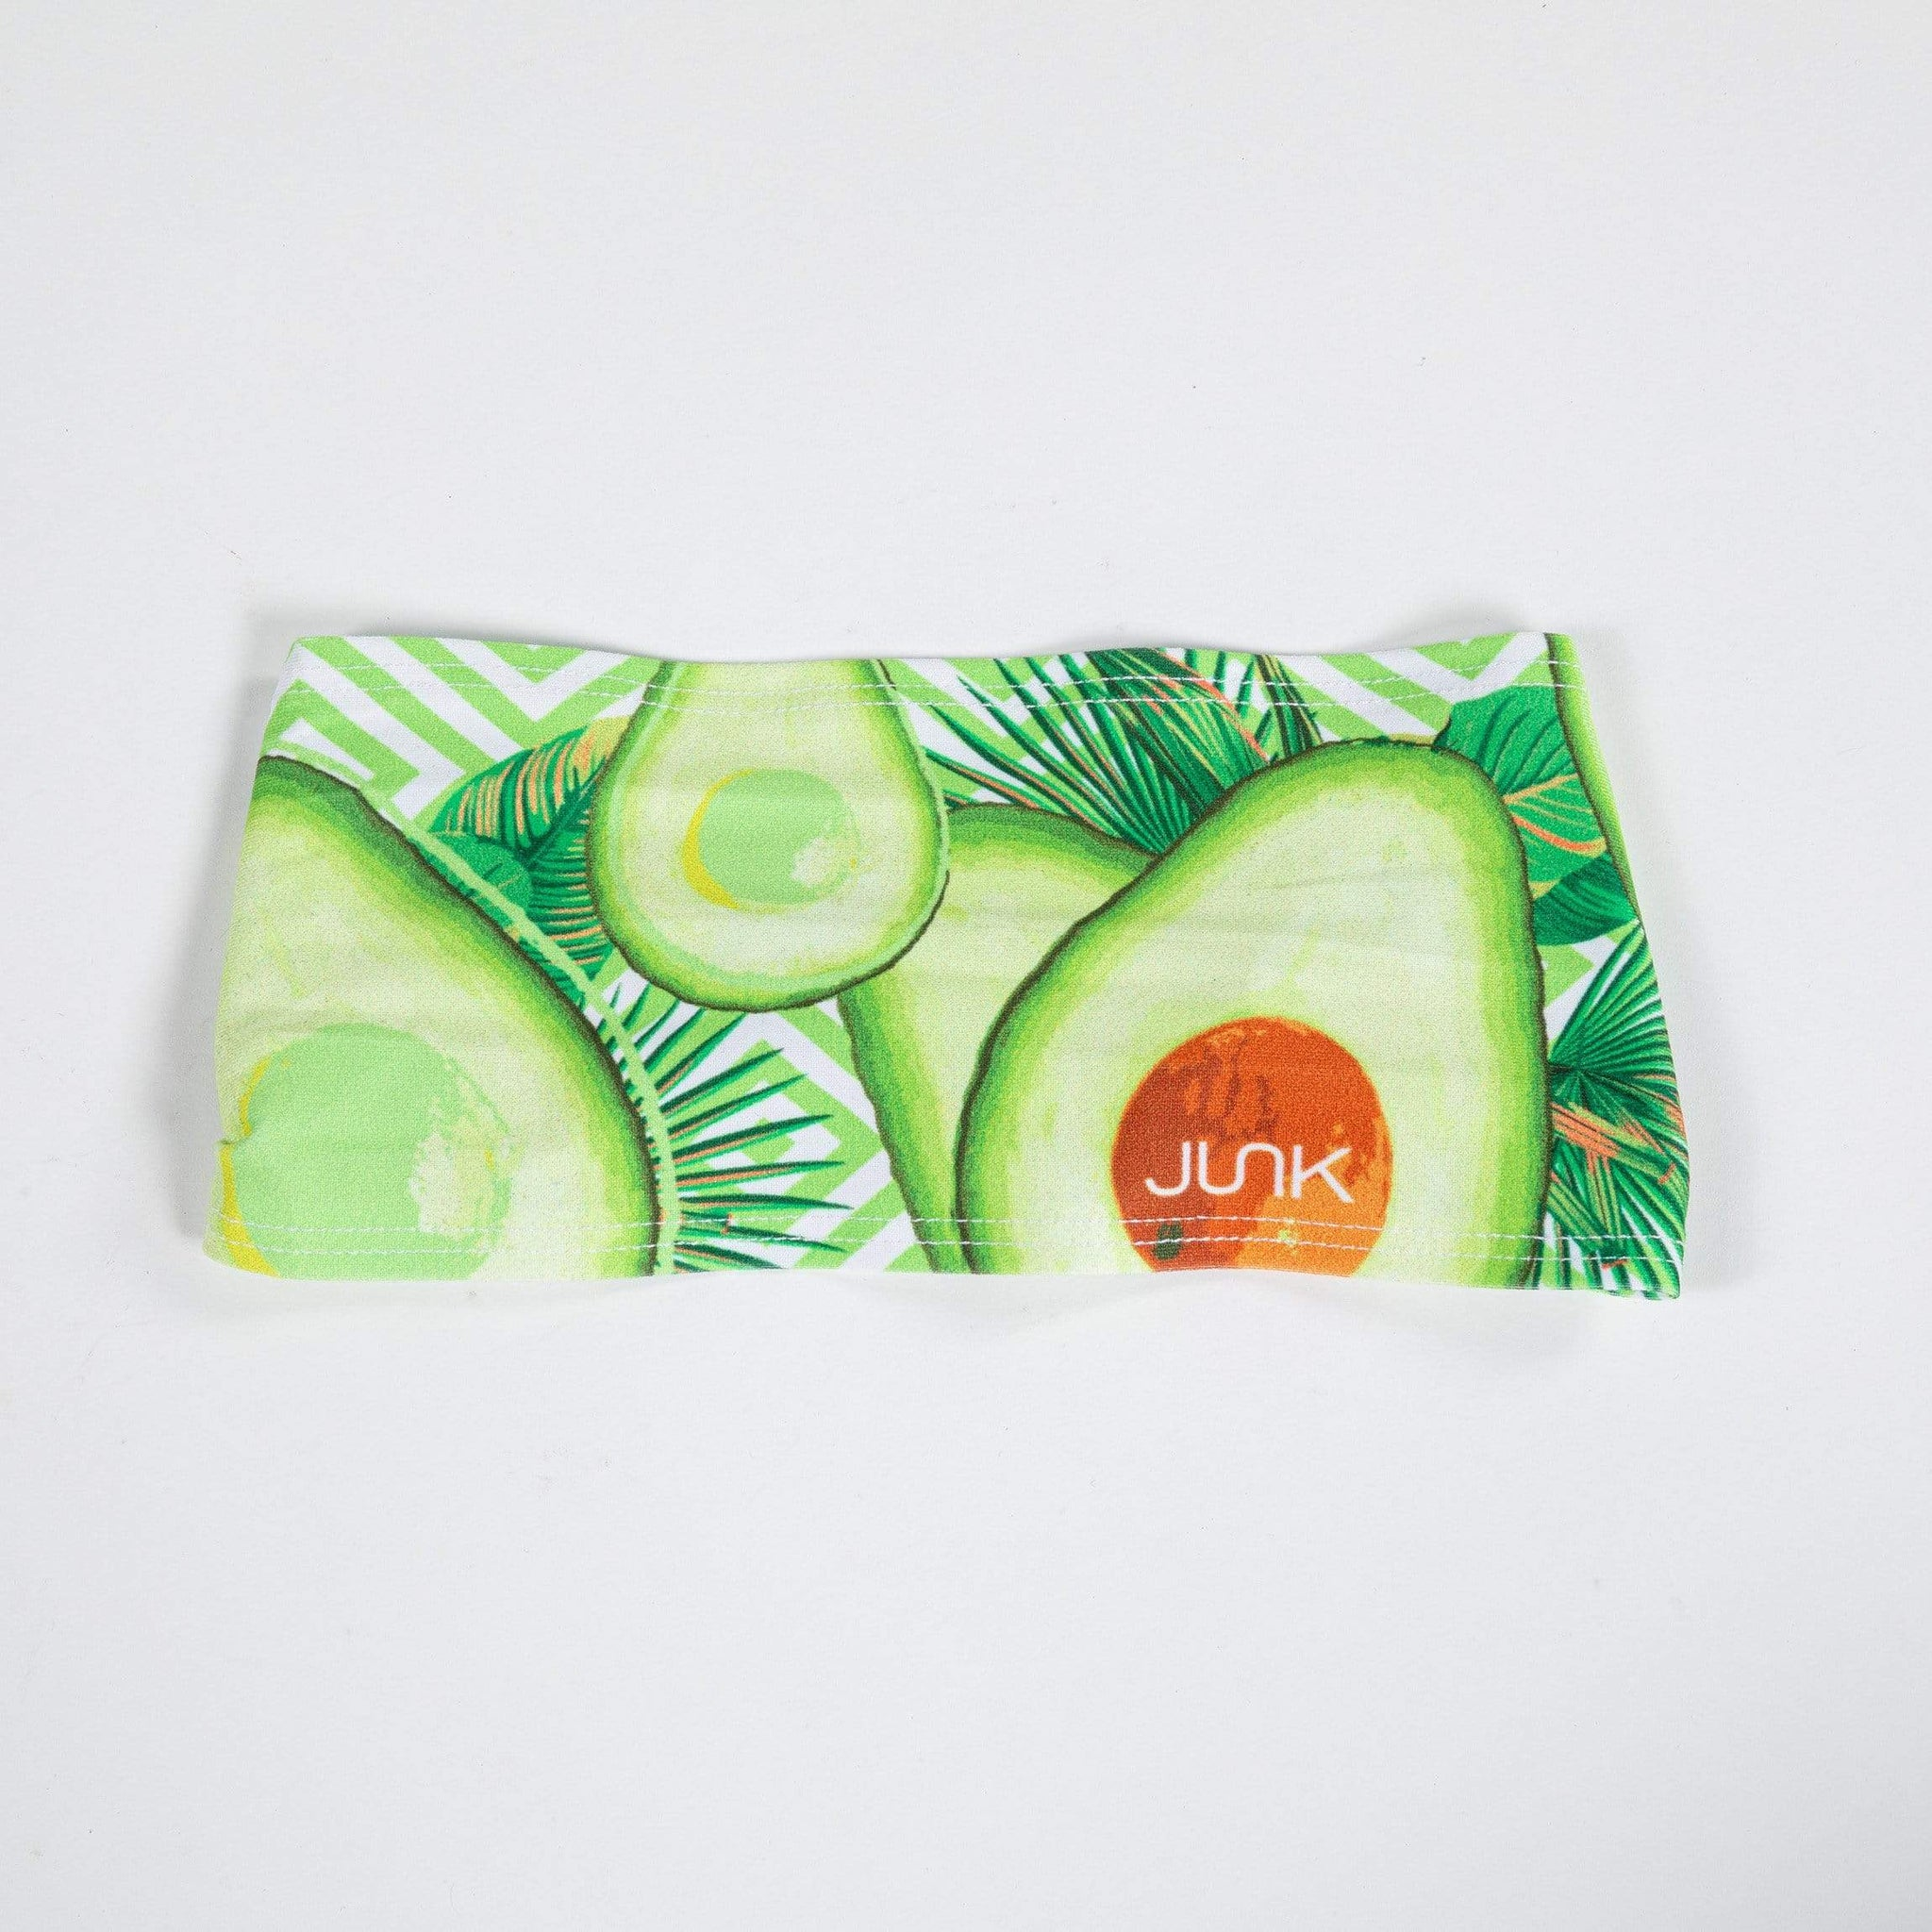 Junk Avoca-Lotta Heabands One Size / Green / Unisex